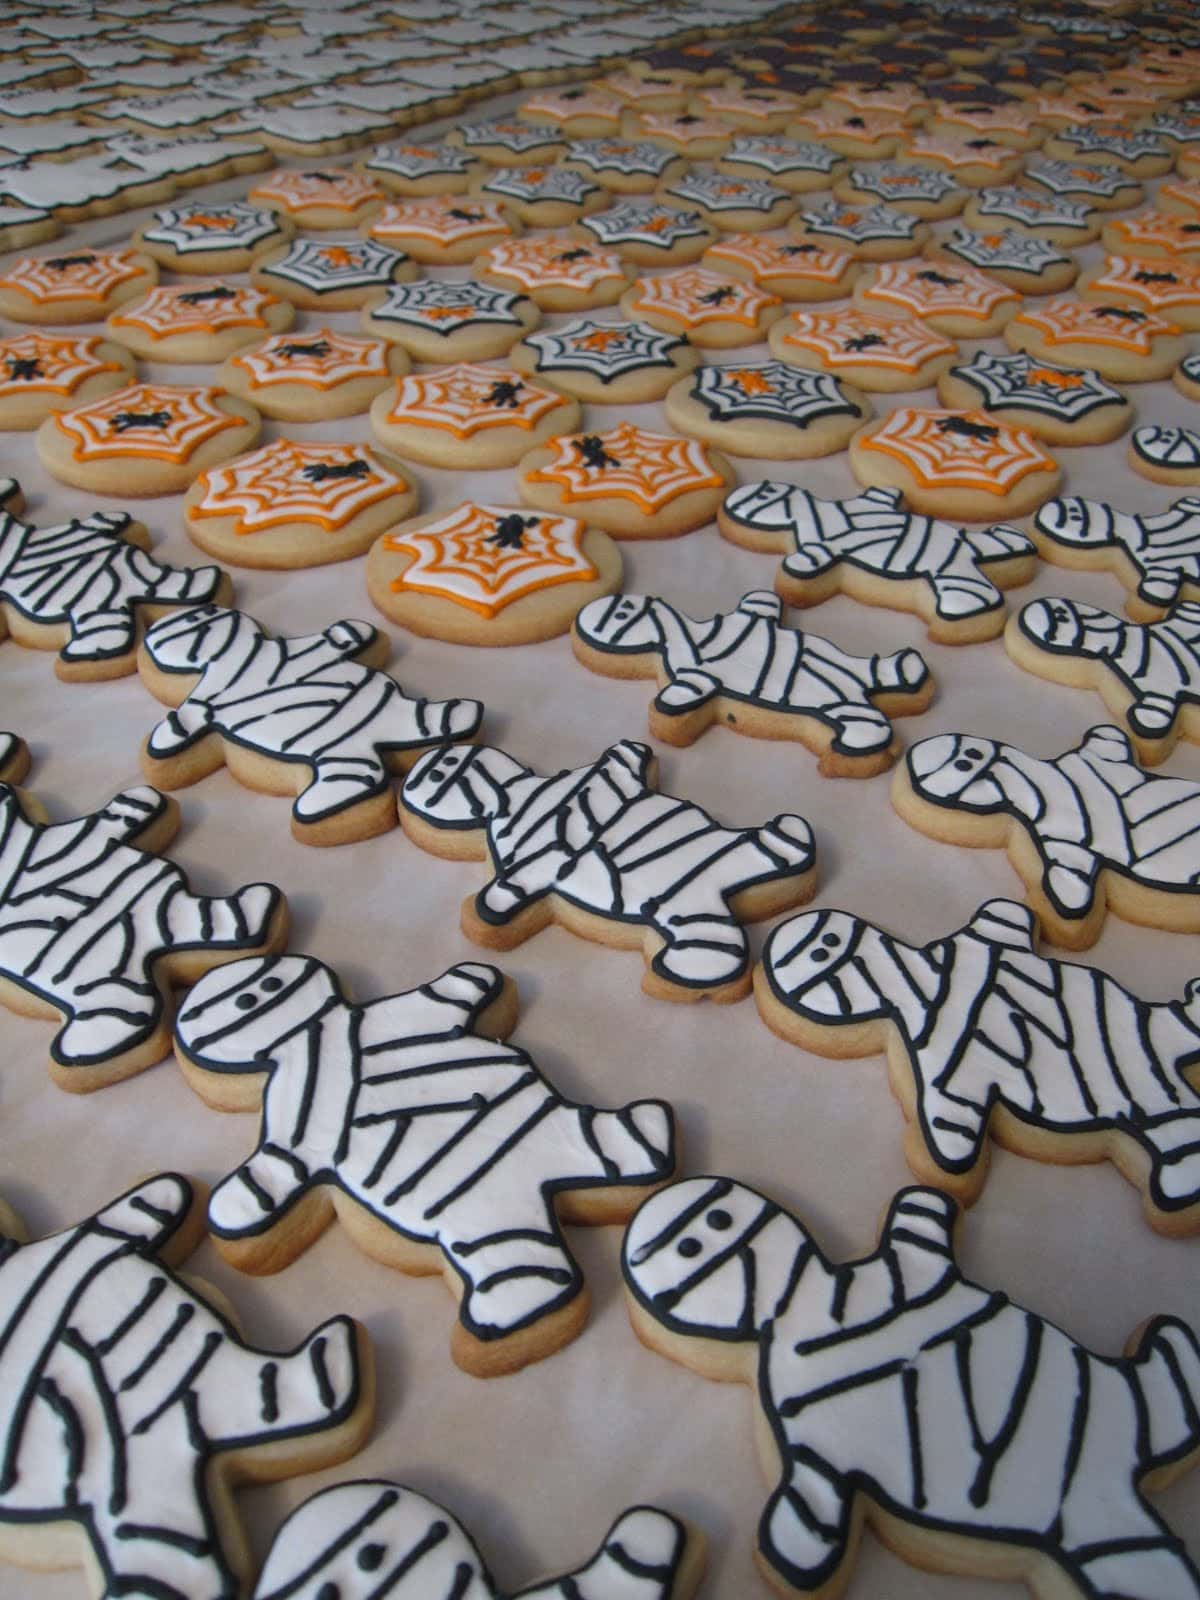 A variety of Halloween-themed frosted cookies